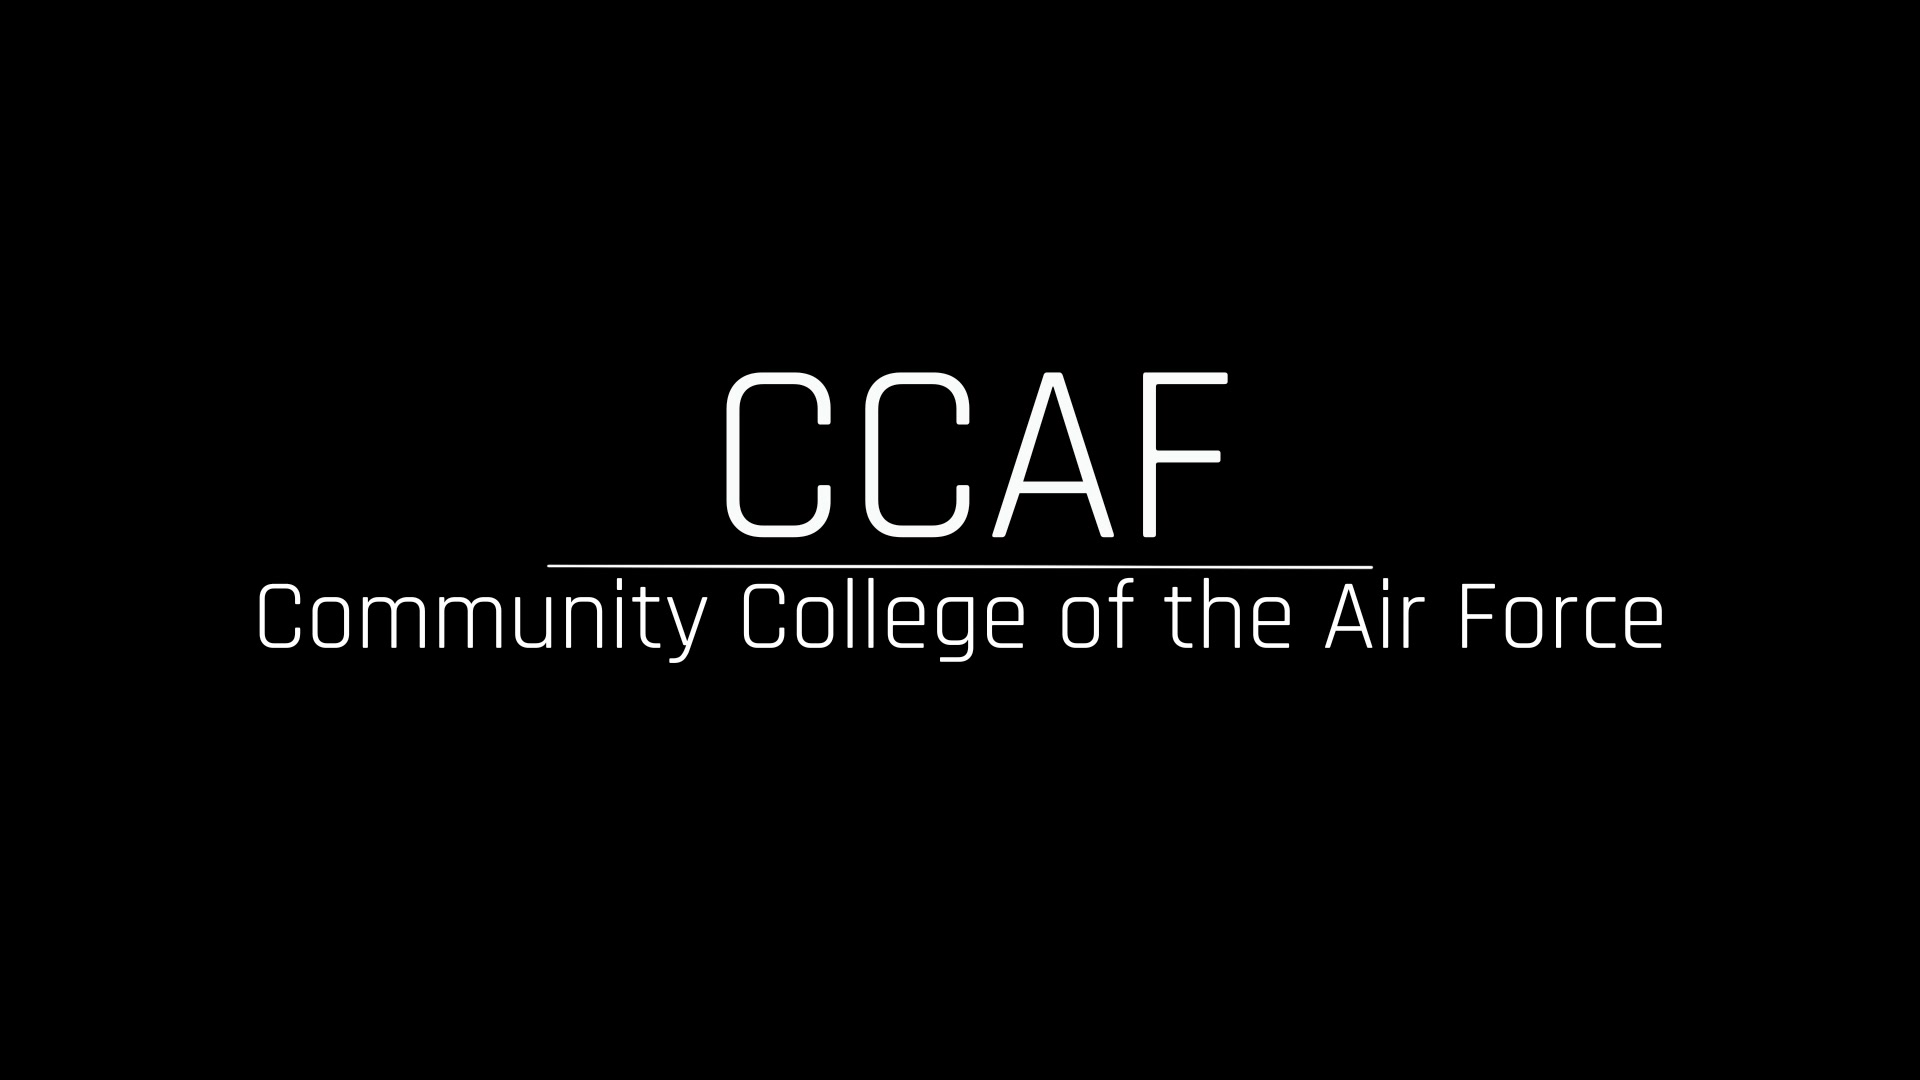 The Community College of the Air Force is a federally-chartered academic institution that serves the United States Air Force's enlisted total force. We partner with 112 affiliated Air Force schools and 300 Education Service Offices located worldwide to serve approximately 270,000 active, guard, and reserve enlisted personnel, making CCAF the world's largest community college system. The college annually awards over 22,000 associate in applied science degrees from 71 degree programs. 